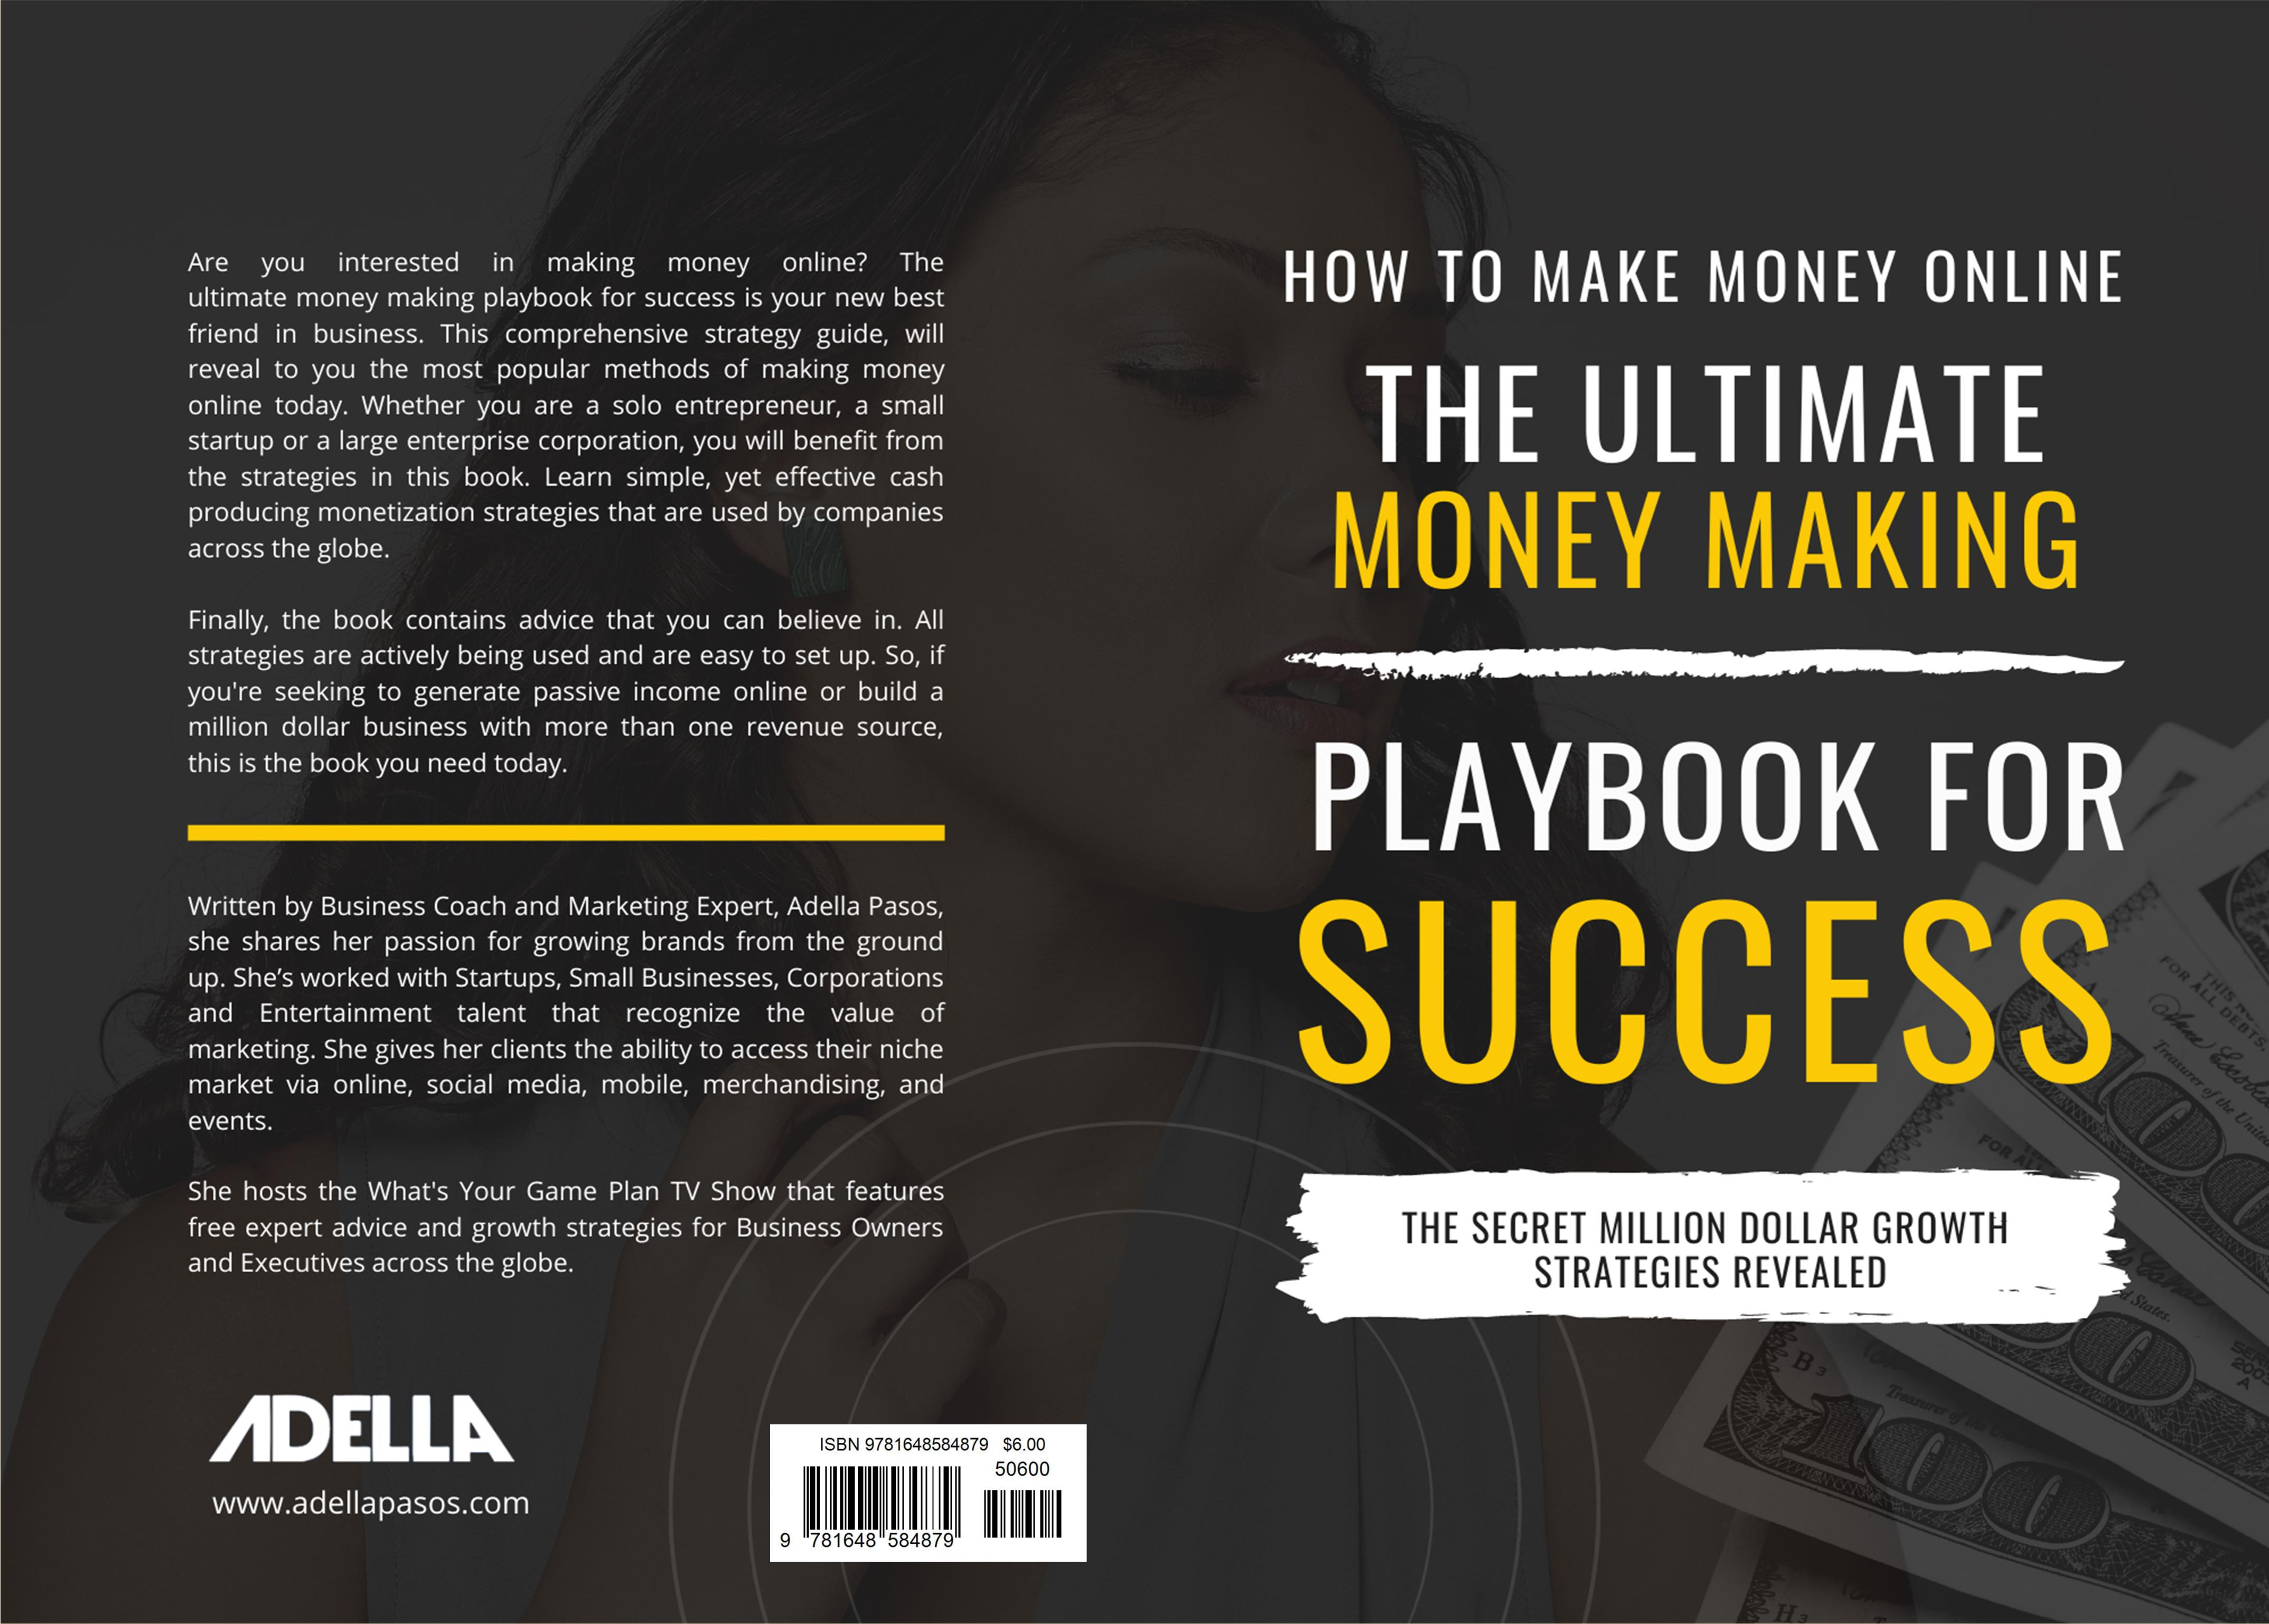 How to Make Money Online - The Ultimate Money Making Playbook for Success cover image